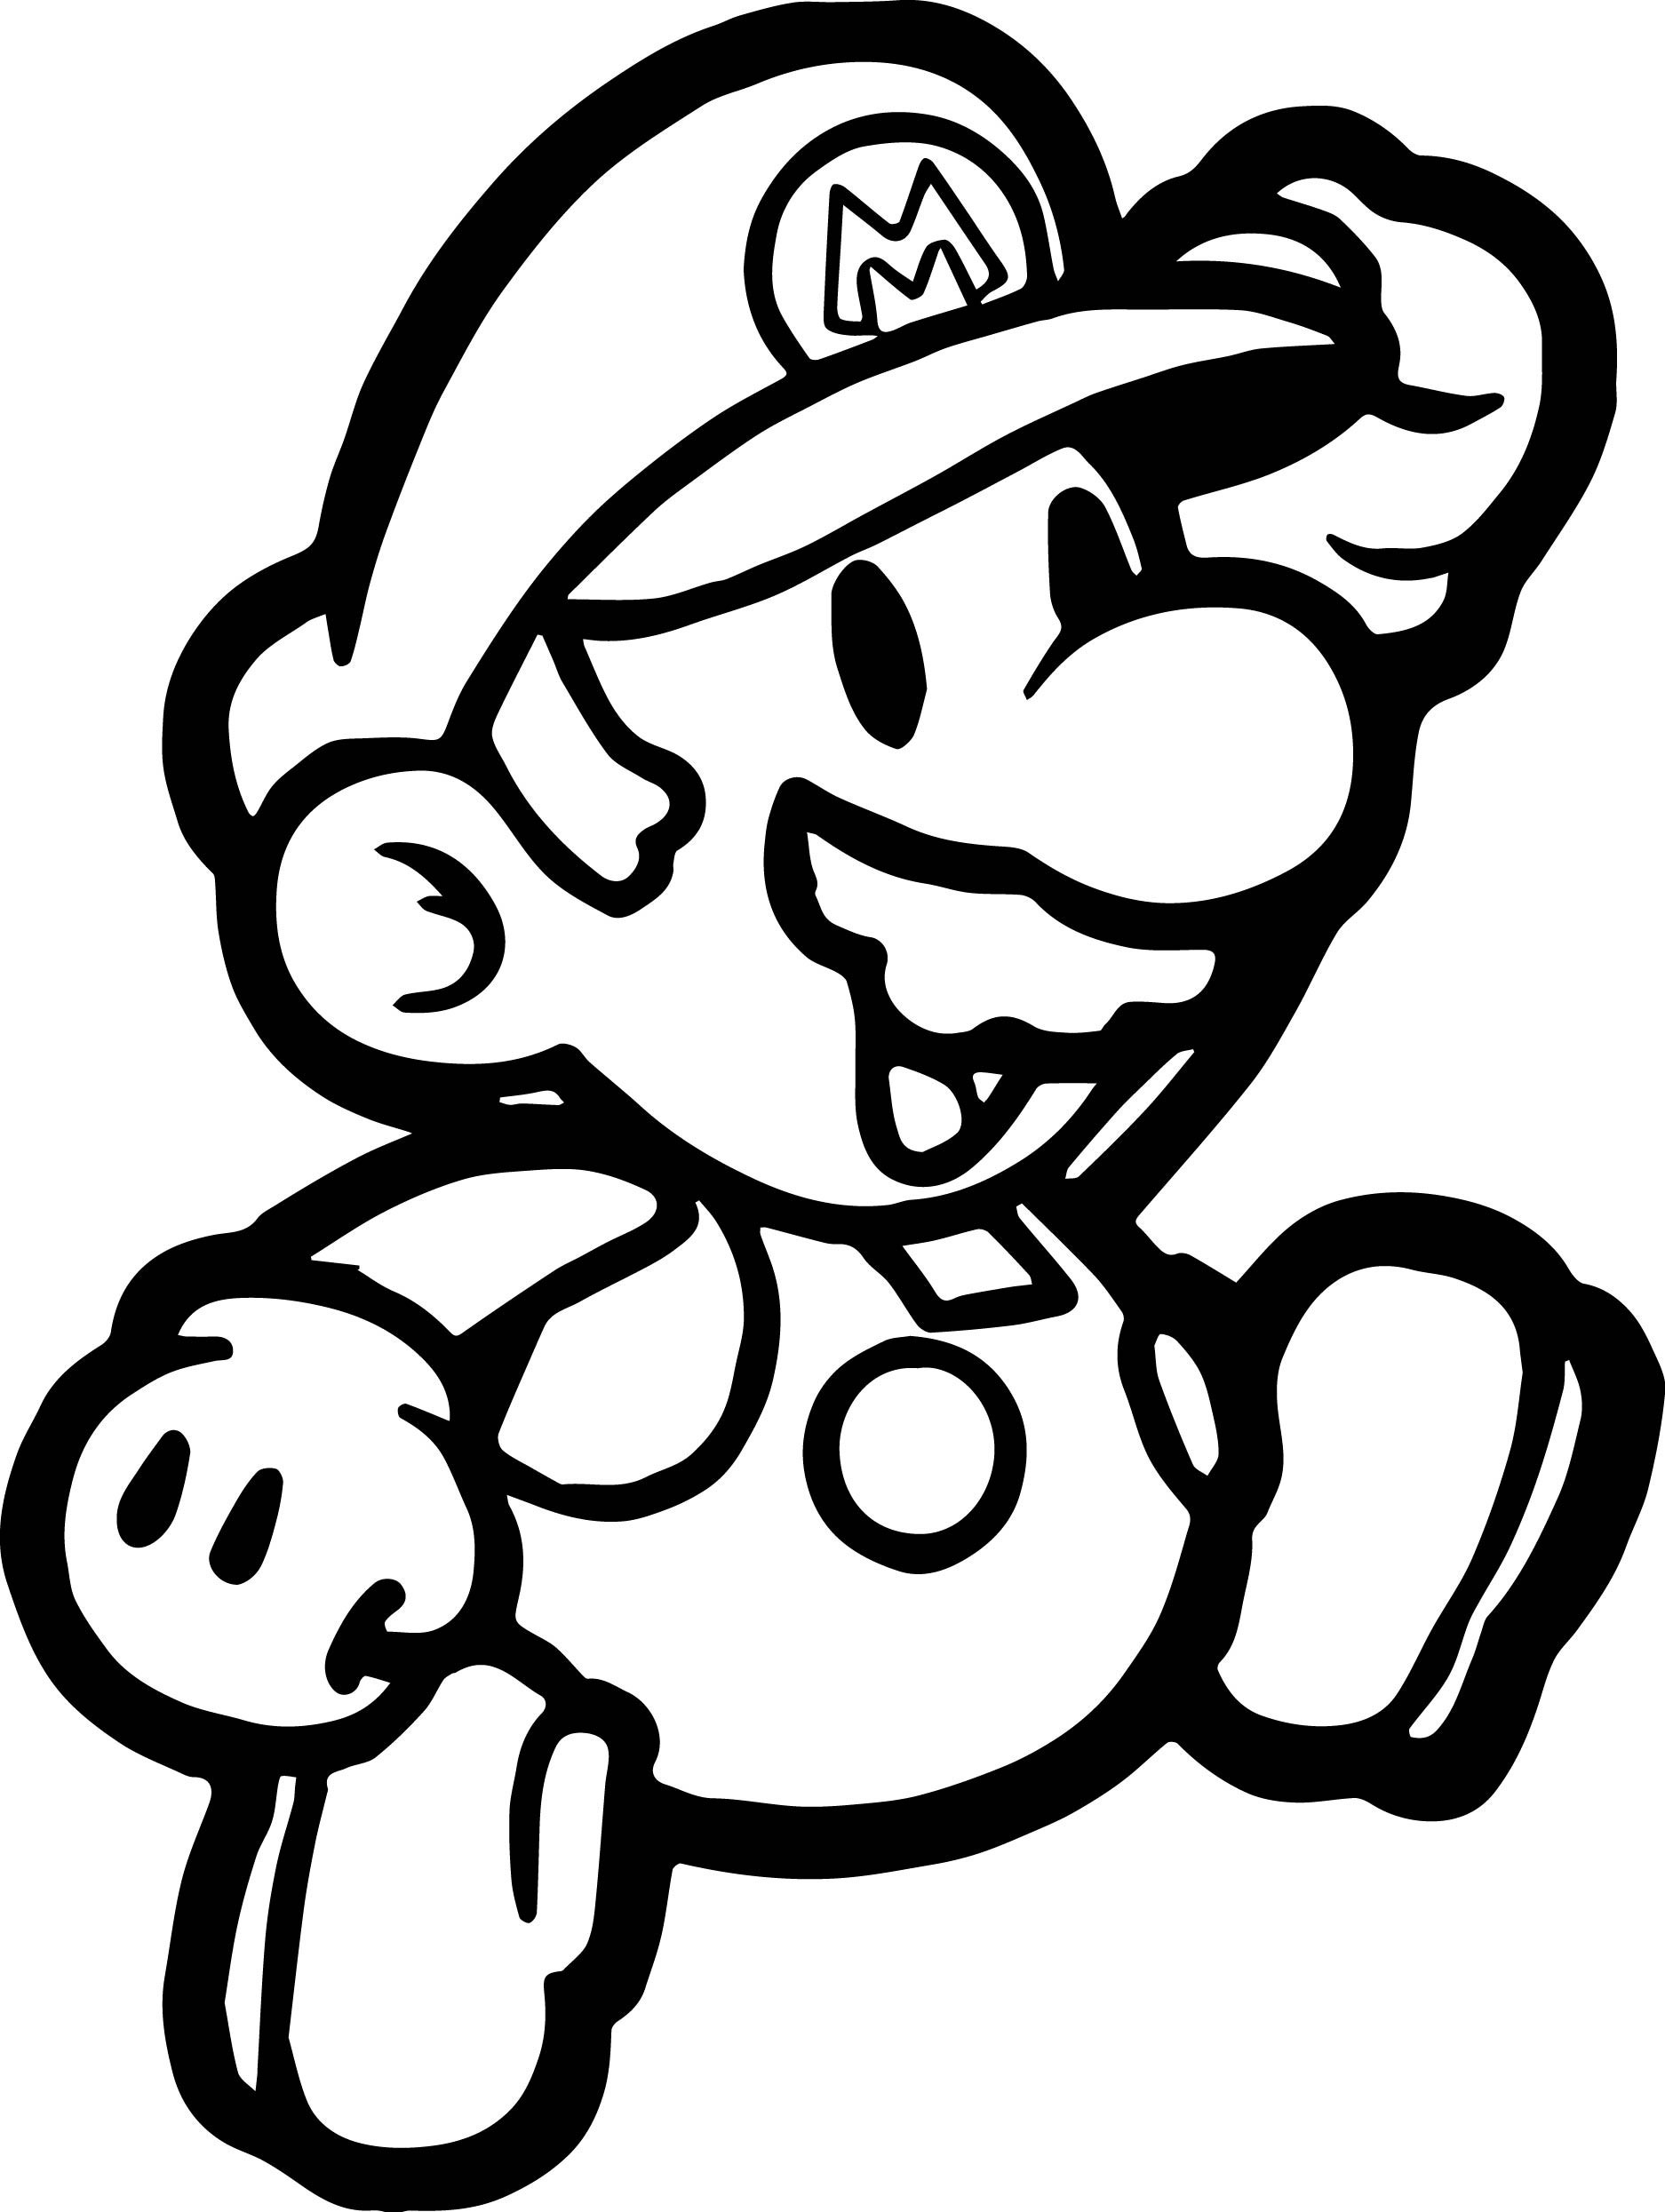 coloring sheet mario coloring pages best super mario coloring pages collection super mario coloring sheet coloring pages mario